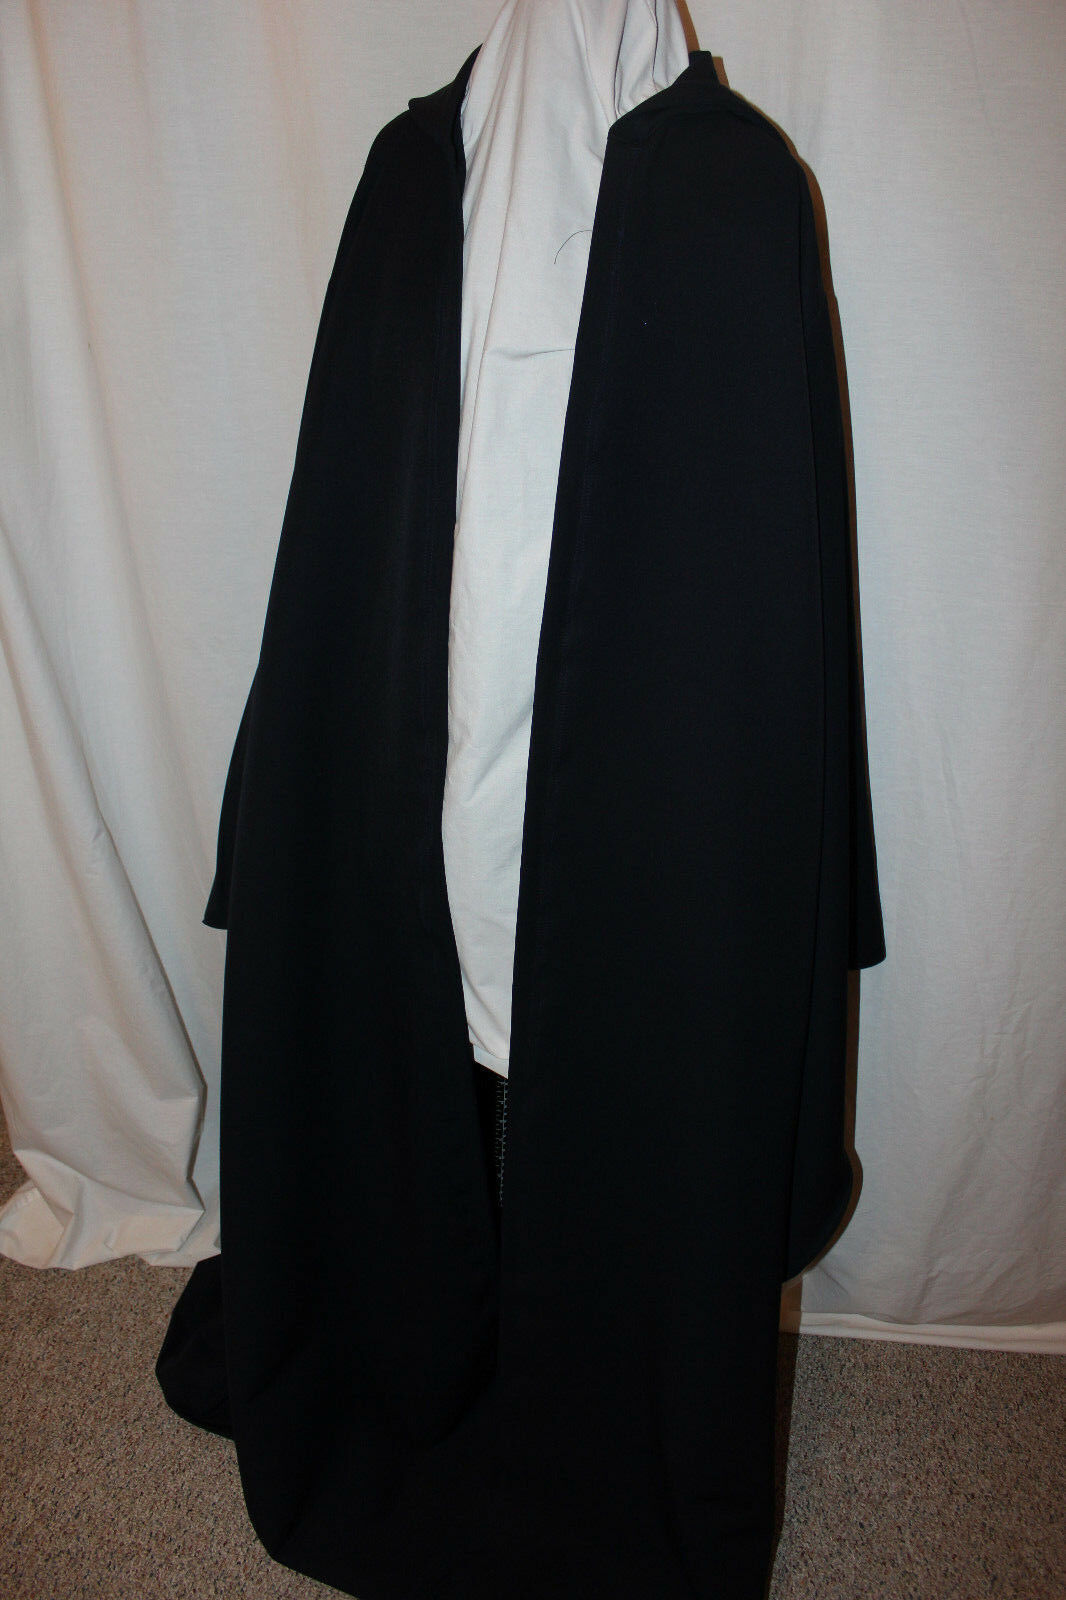 NEW! Post apocalyptic Star wars, Wizzard Hooded cloak Long sleeved, One size